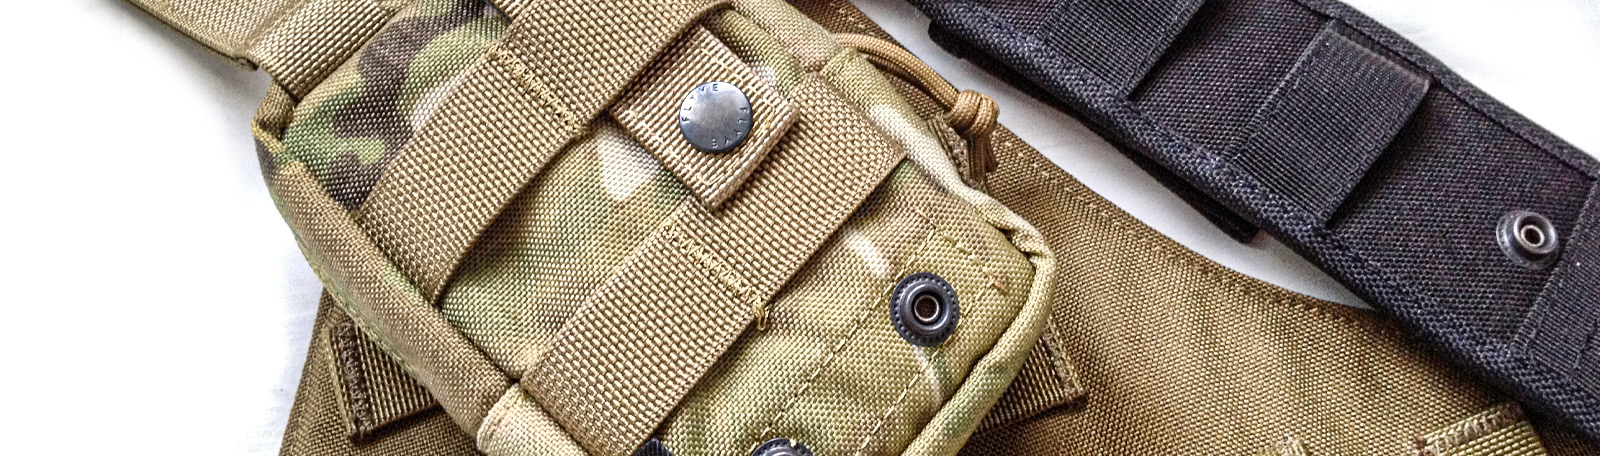 Gear - Pouches Category